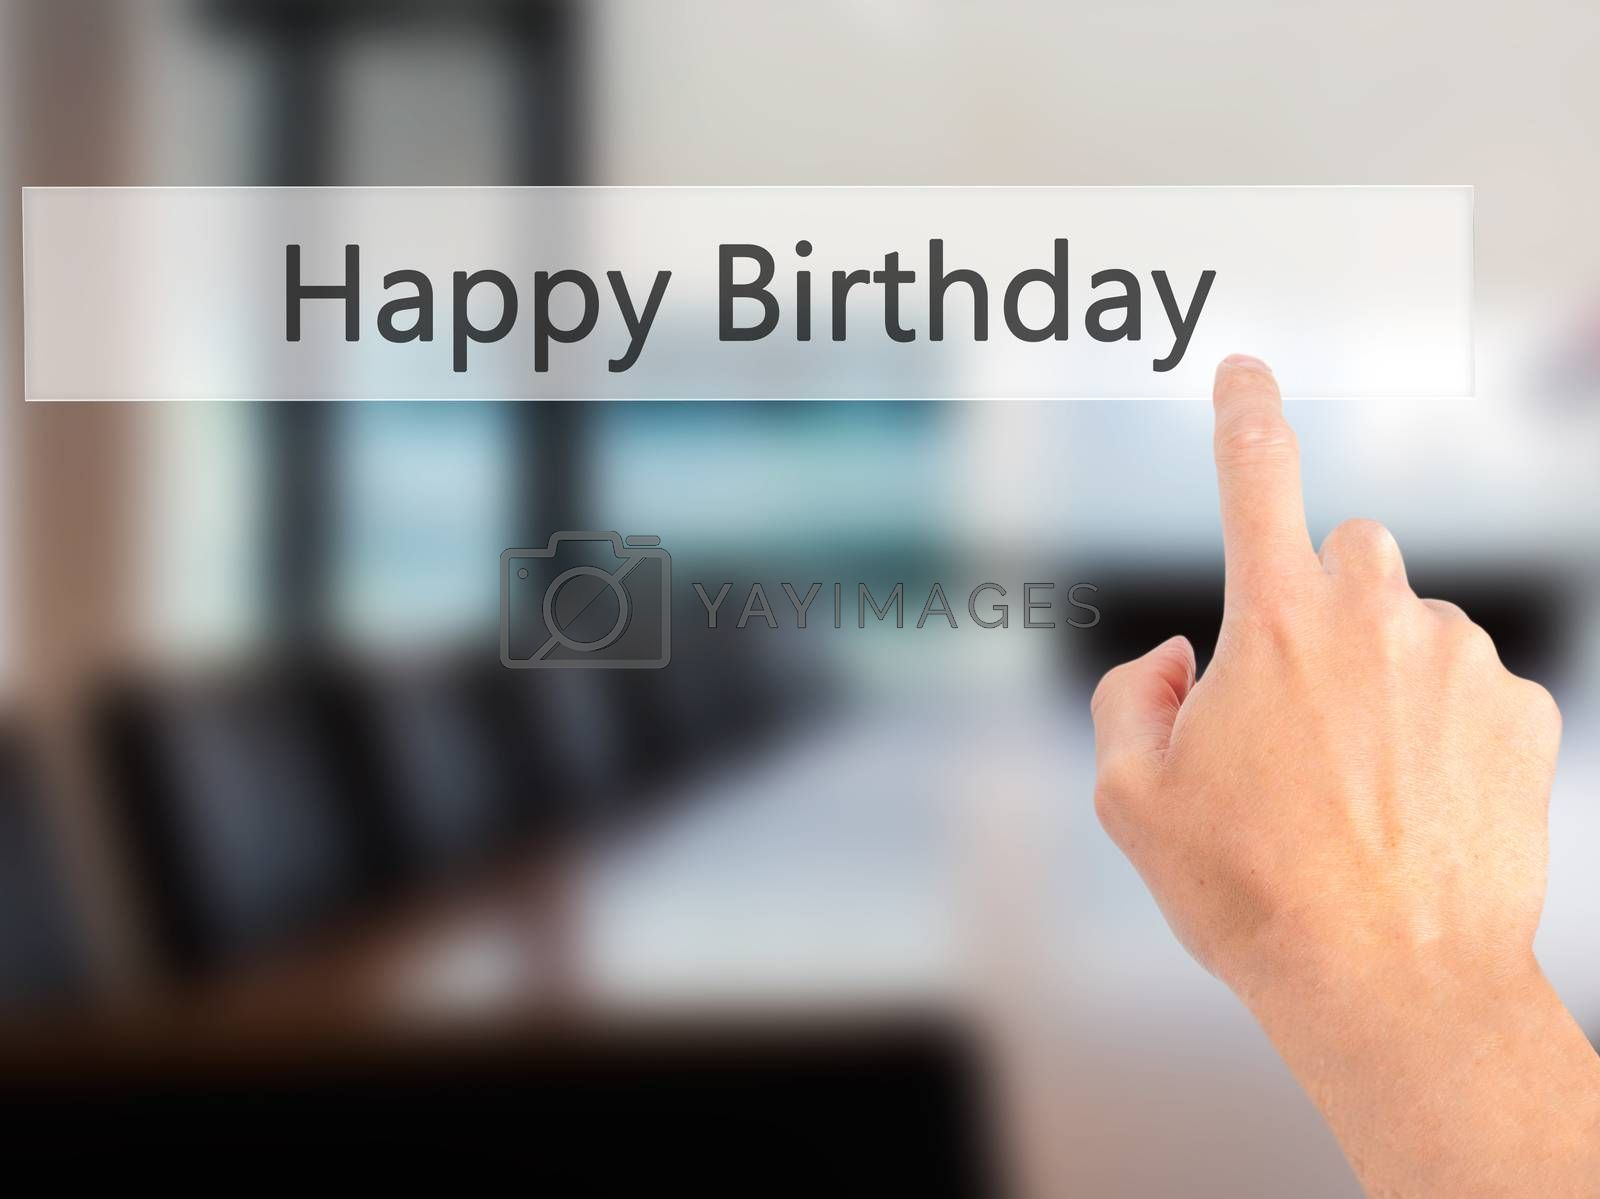 Happy Birthday - Hand pressing a button on blurred background co by netsay.net